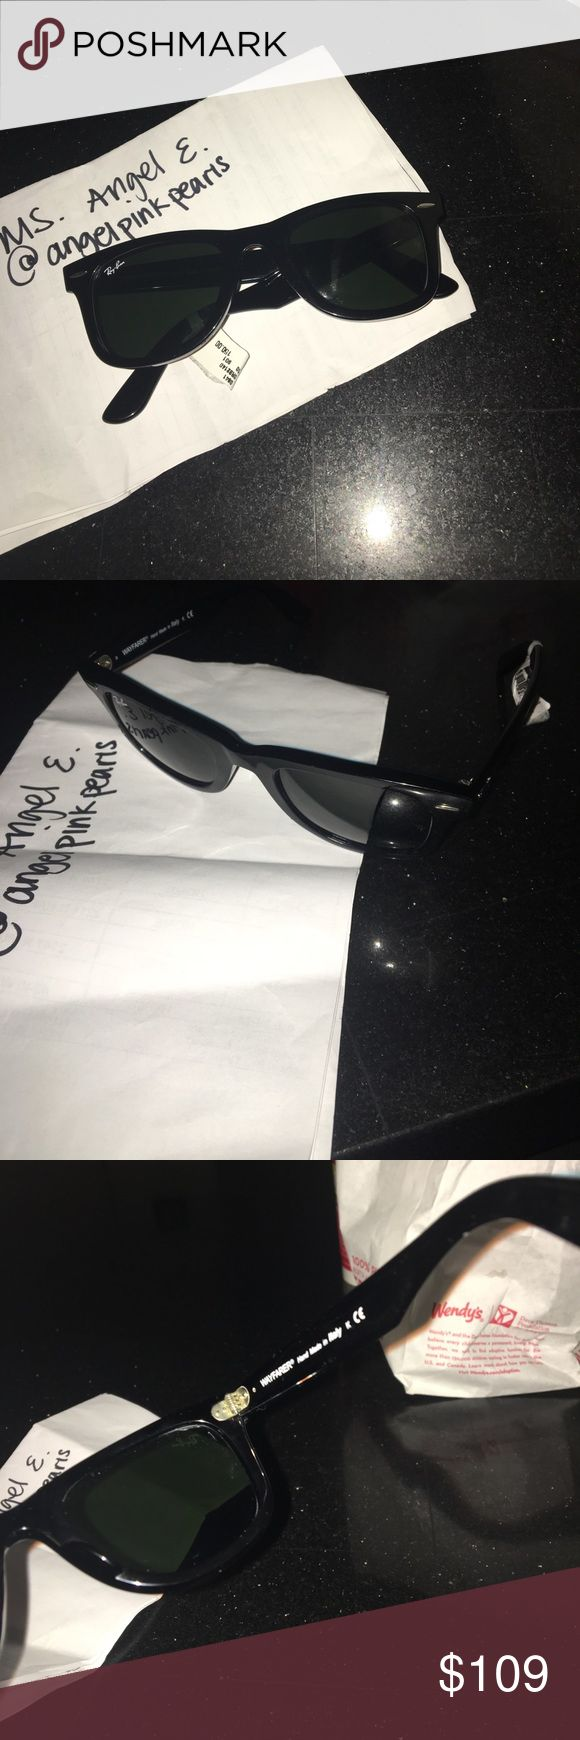 Ray Ban Wayfarer Sunglasses Ray Ban Wayfarer Sunglasses RB2140, boyfriend has 6 pairs and doesn't need another pair lol Ray-Ban Accessories Sunglasses